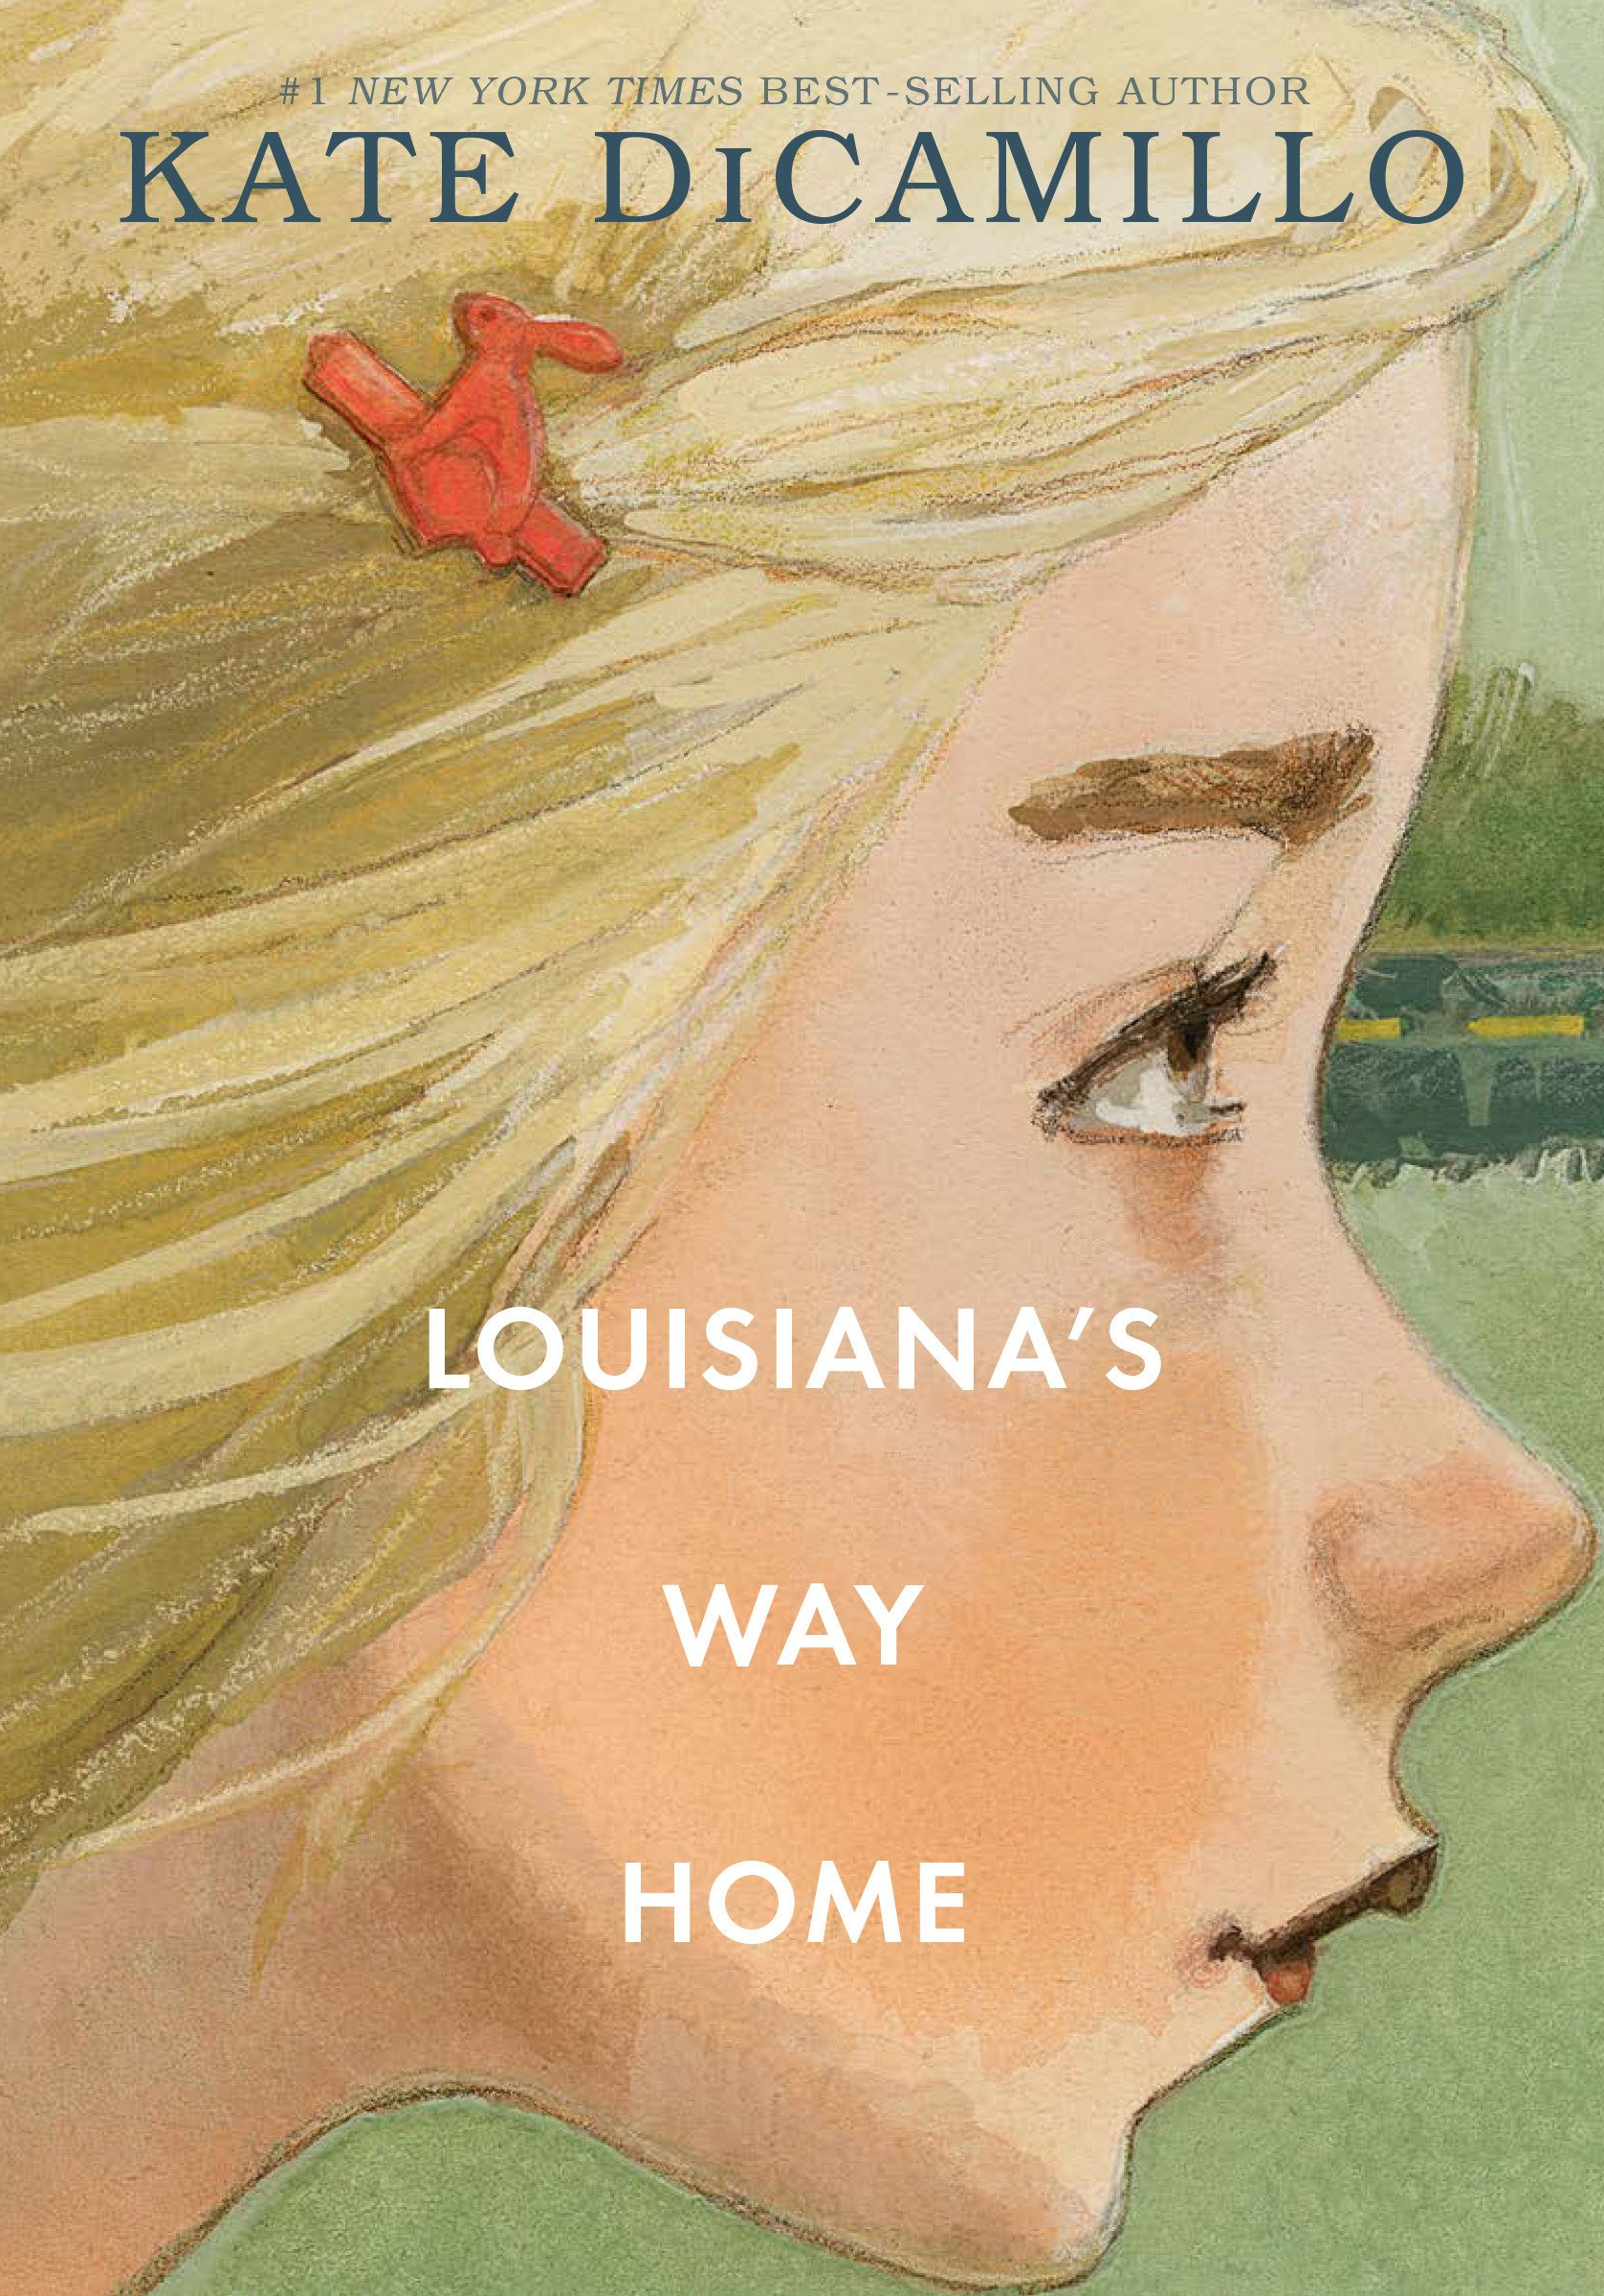 Cover art for the book entitled Louisiana's Way Home